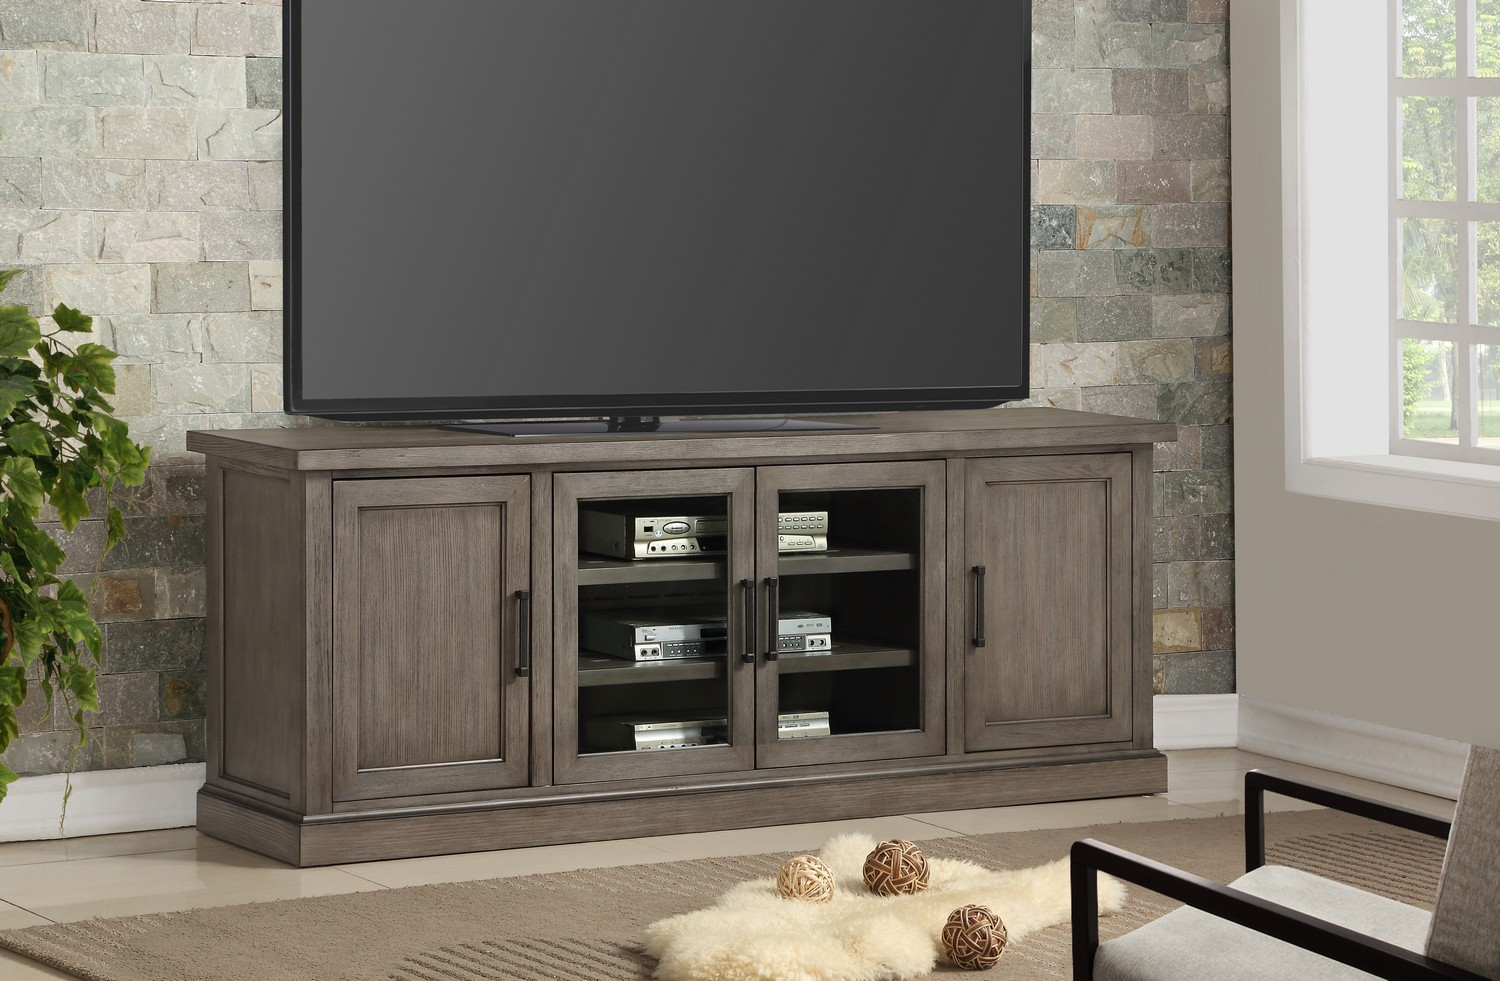 Parker House Scottsdale 76-inch TV Console - Vintage Weathered Pewter